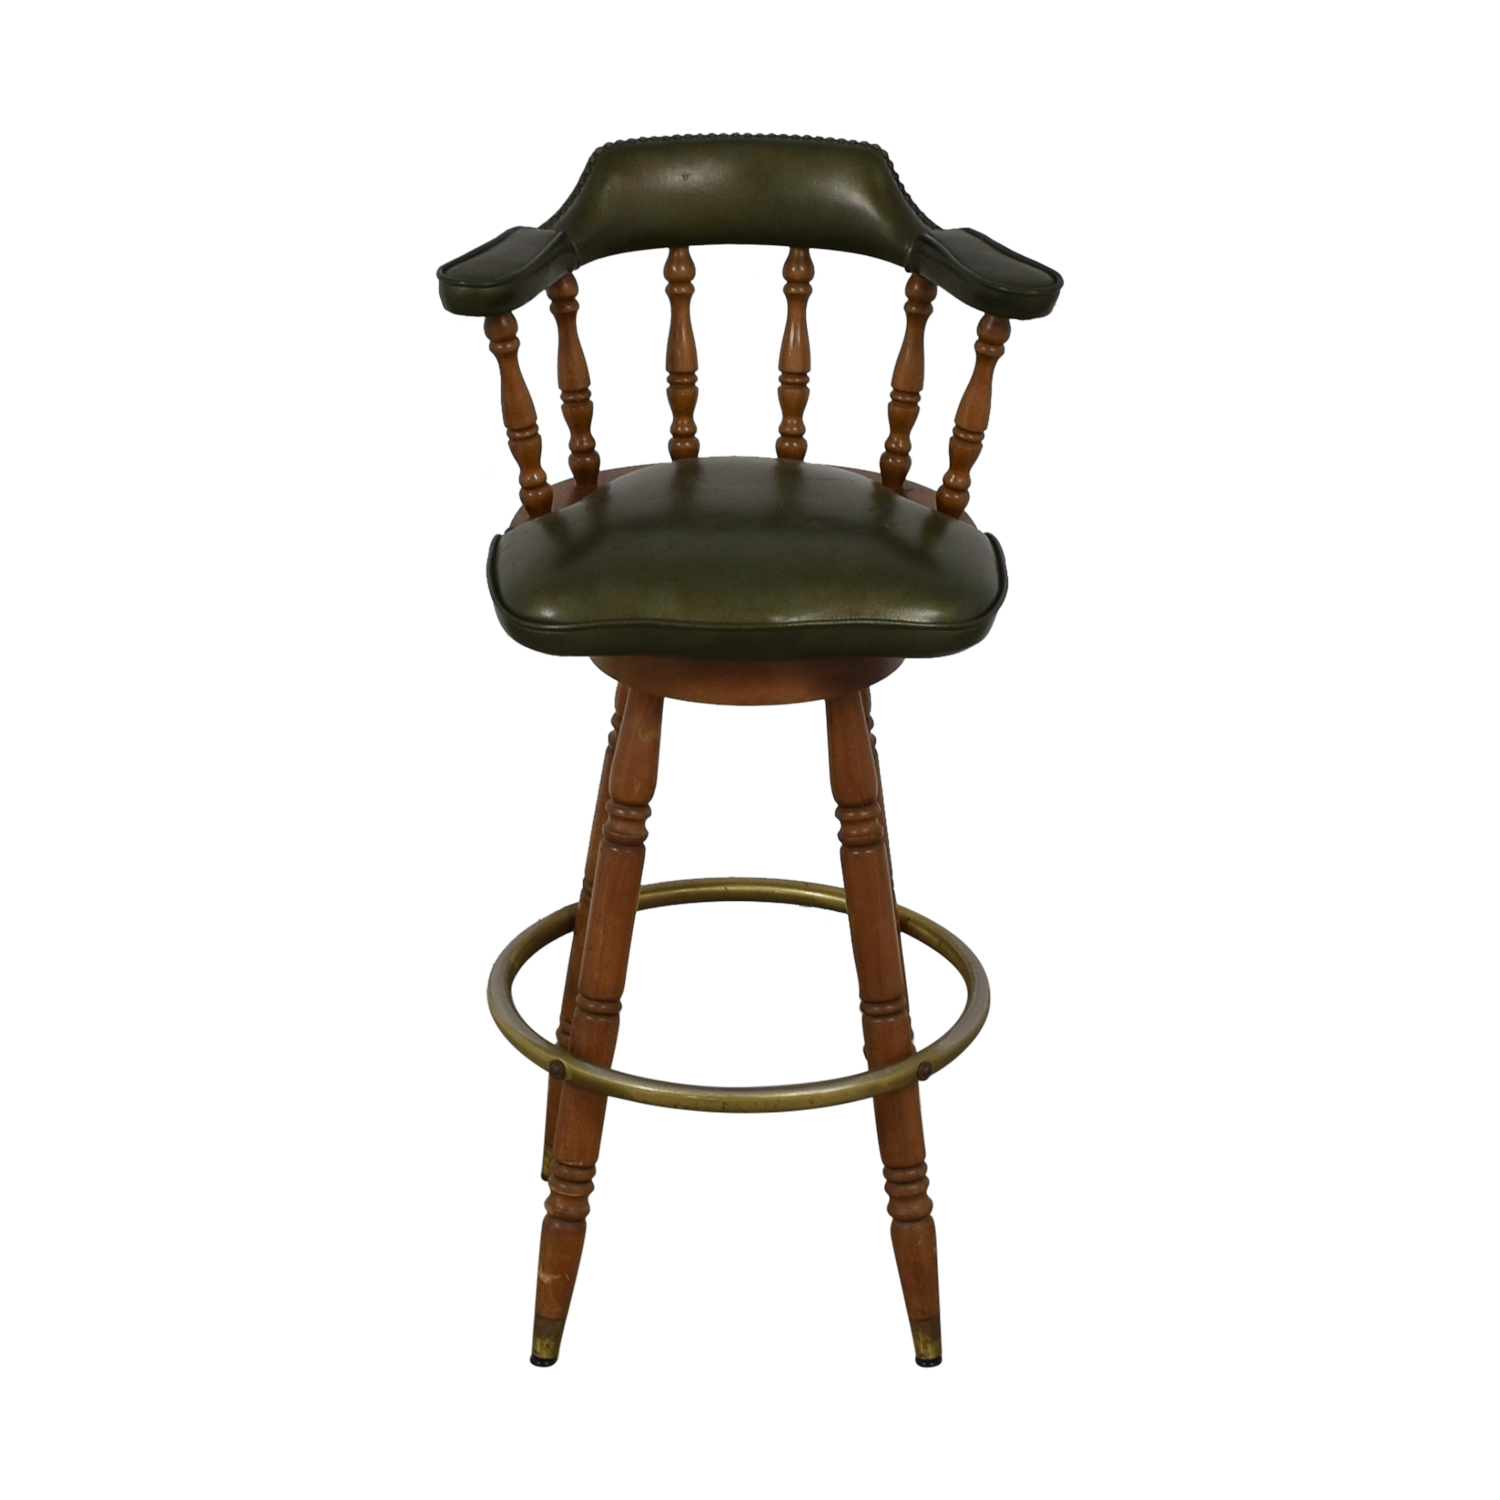 shop  Vintage Green Leather Swivel Bar Stool online